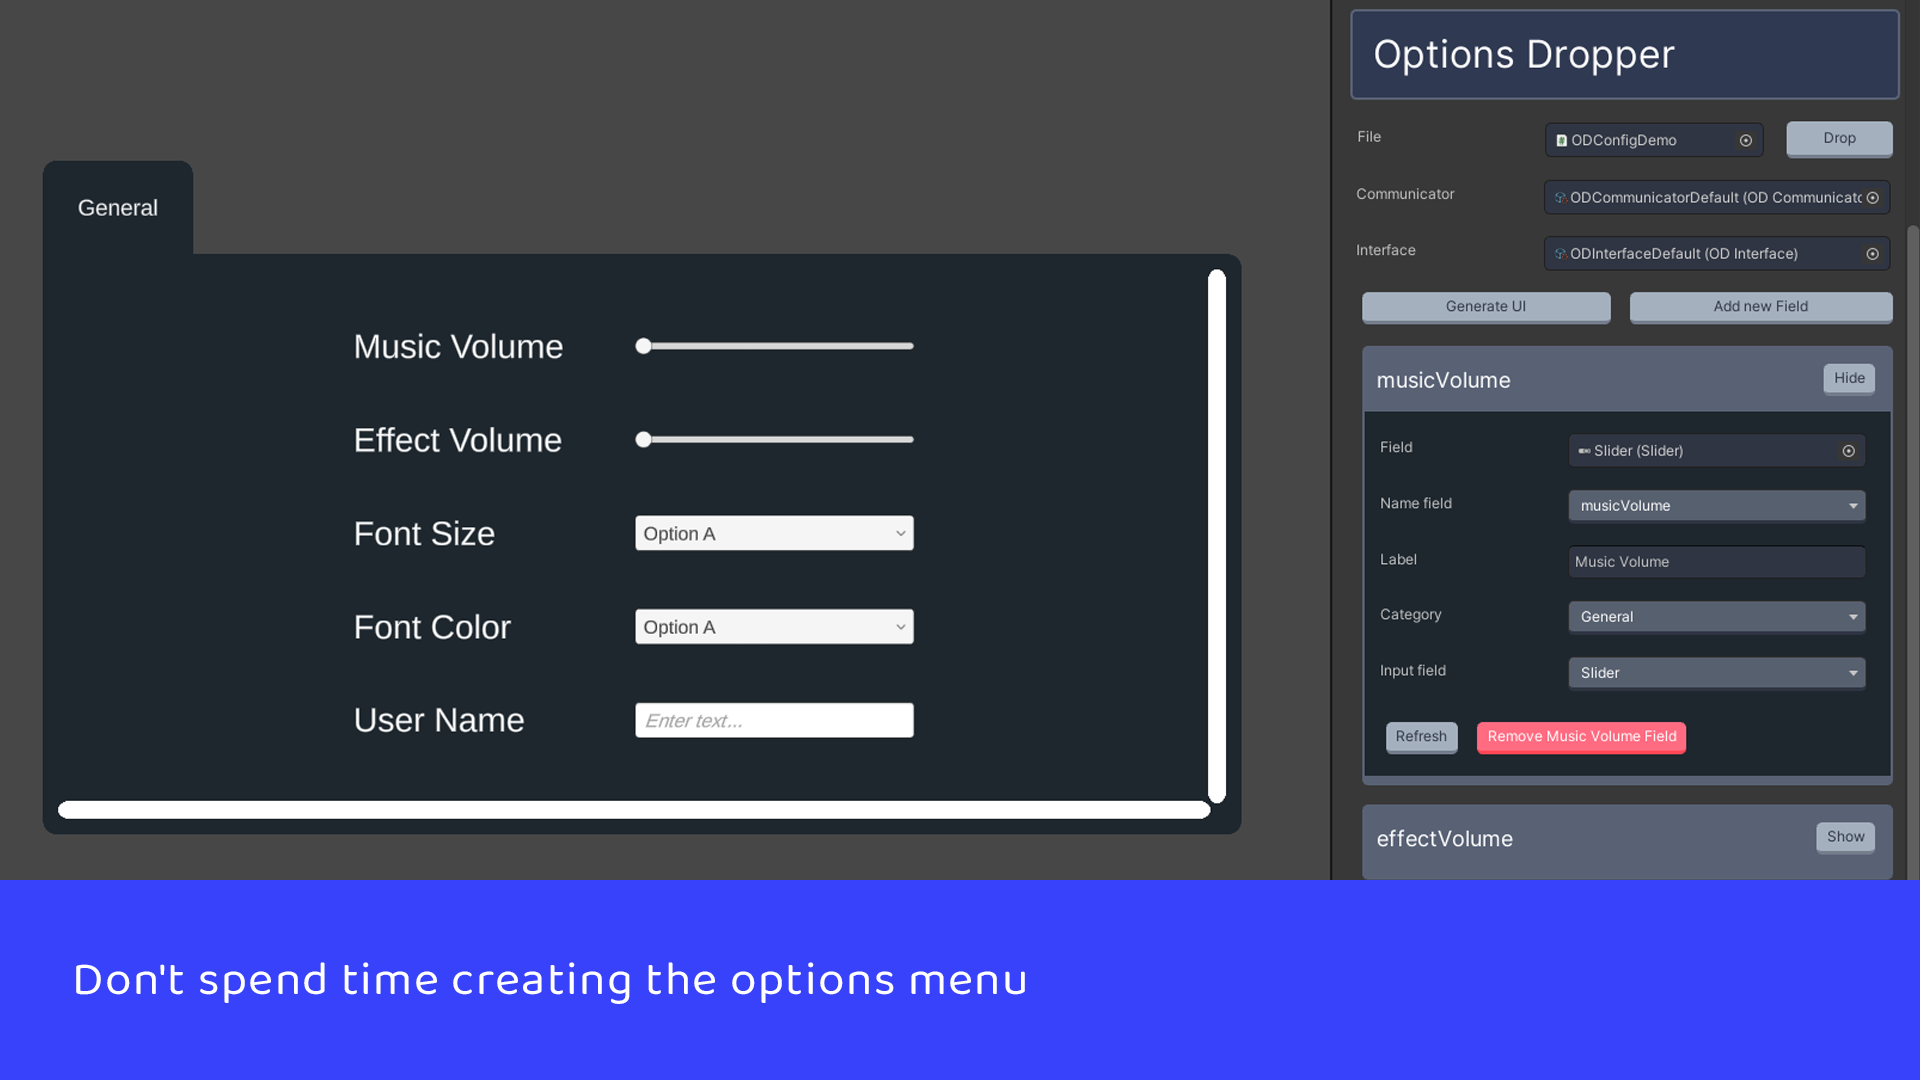 Don't spend time creating the options menu